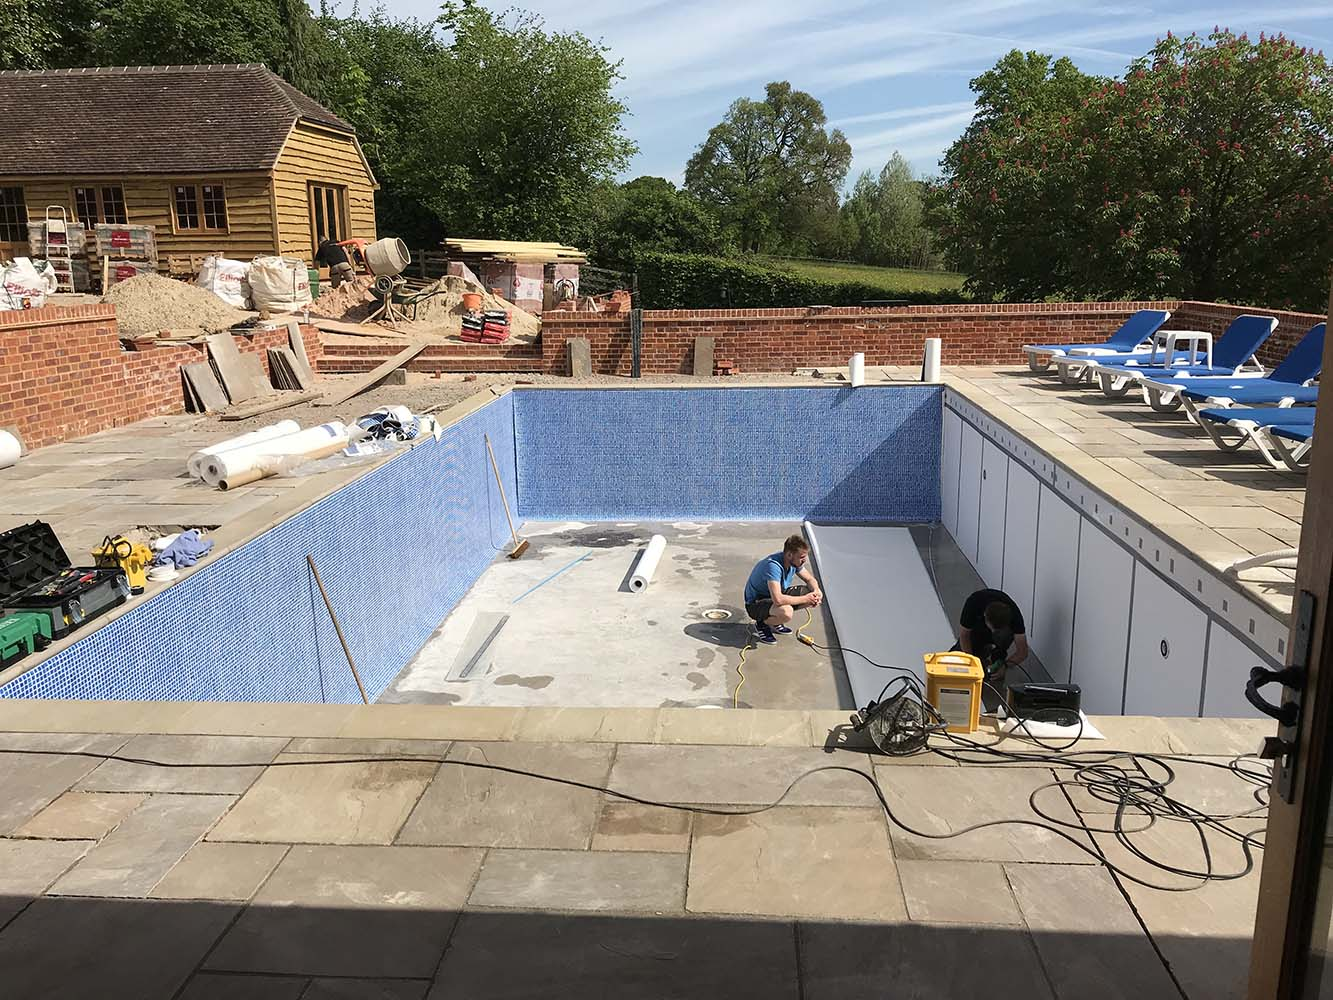 Swimming pool taking shape!